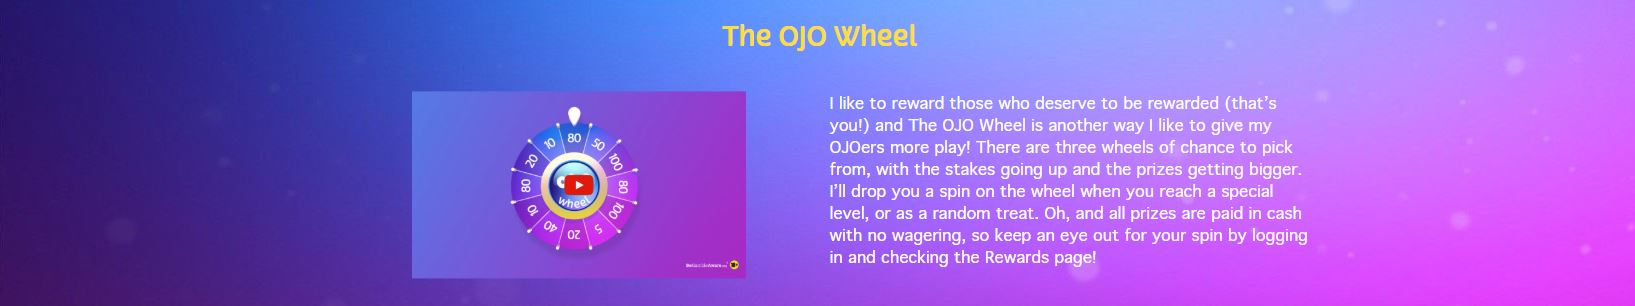 The Ojo wheel